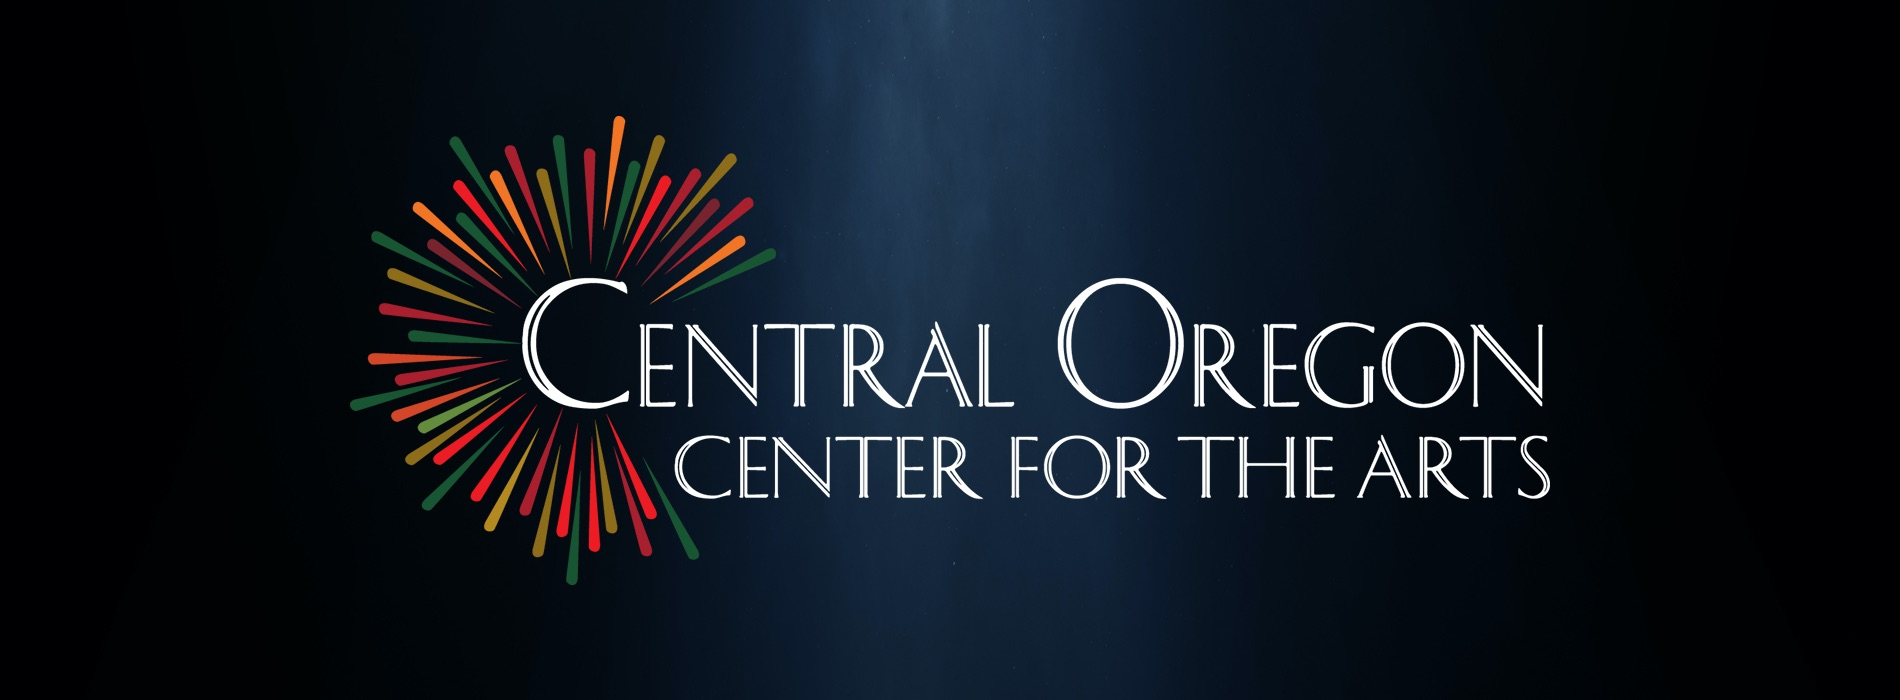 Central Oregon Center for the Arts